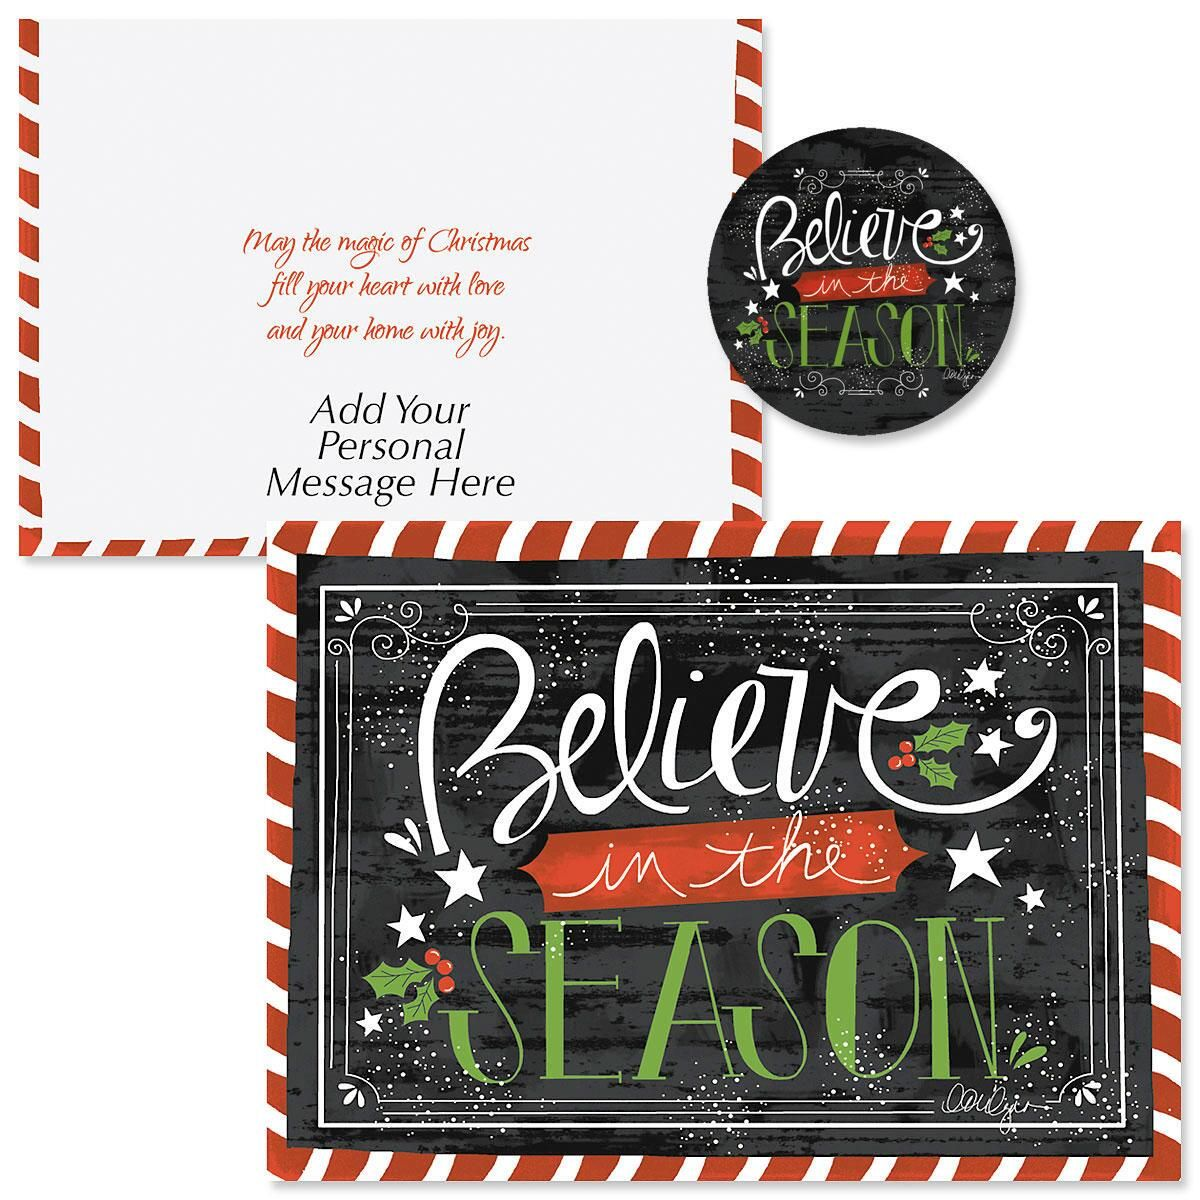 Believe In The Season  Christmas Cards -  Personalized